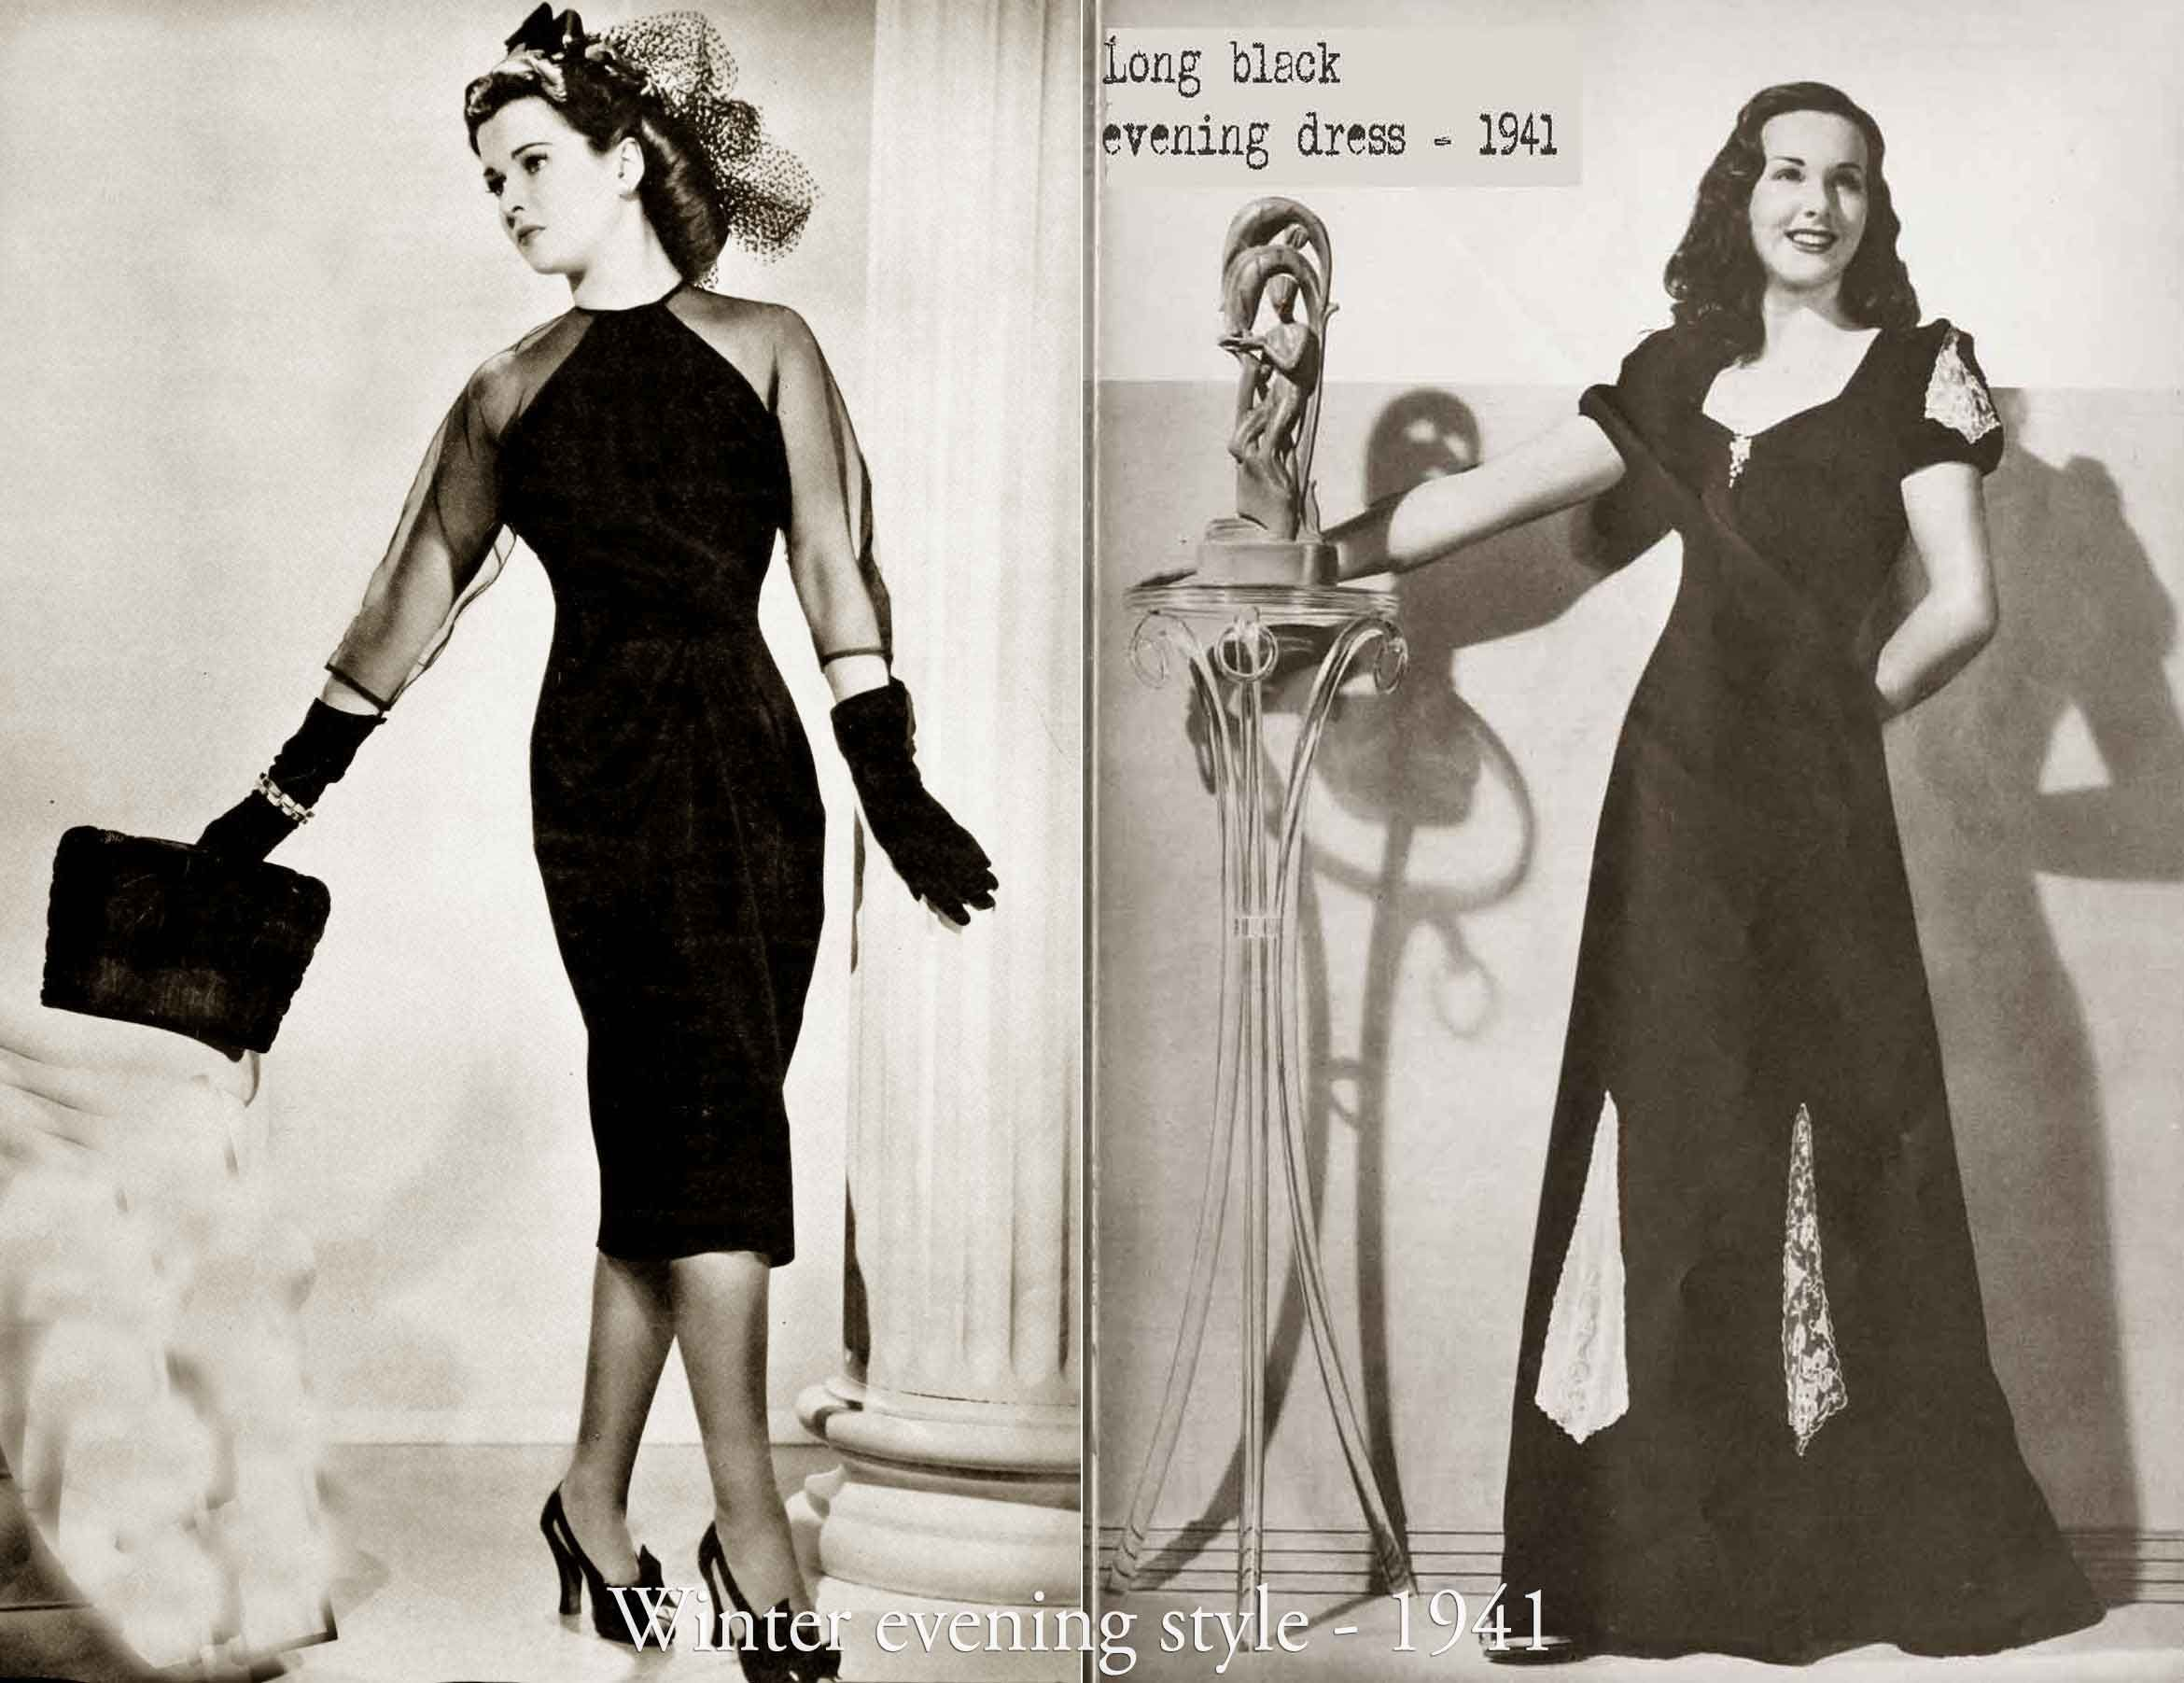 History Of 1940s Fashion 1940 To 1949 Glamour Daze Evening Dress Fashion 1940s Fashion Fashion [ 1803 x 2340 Pixel ]